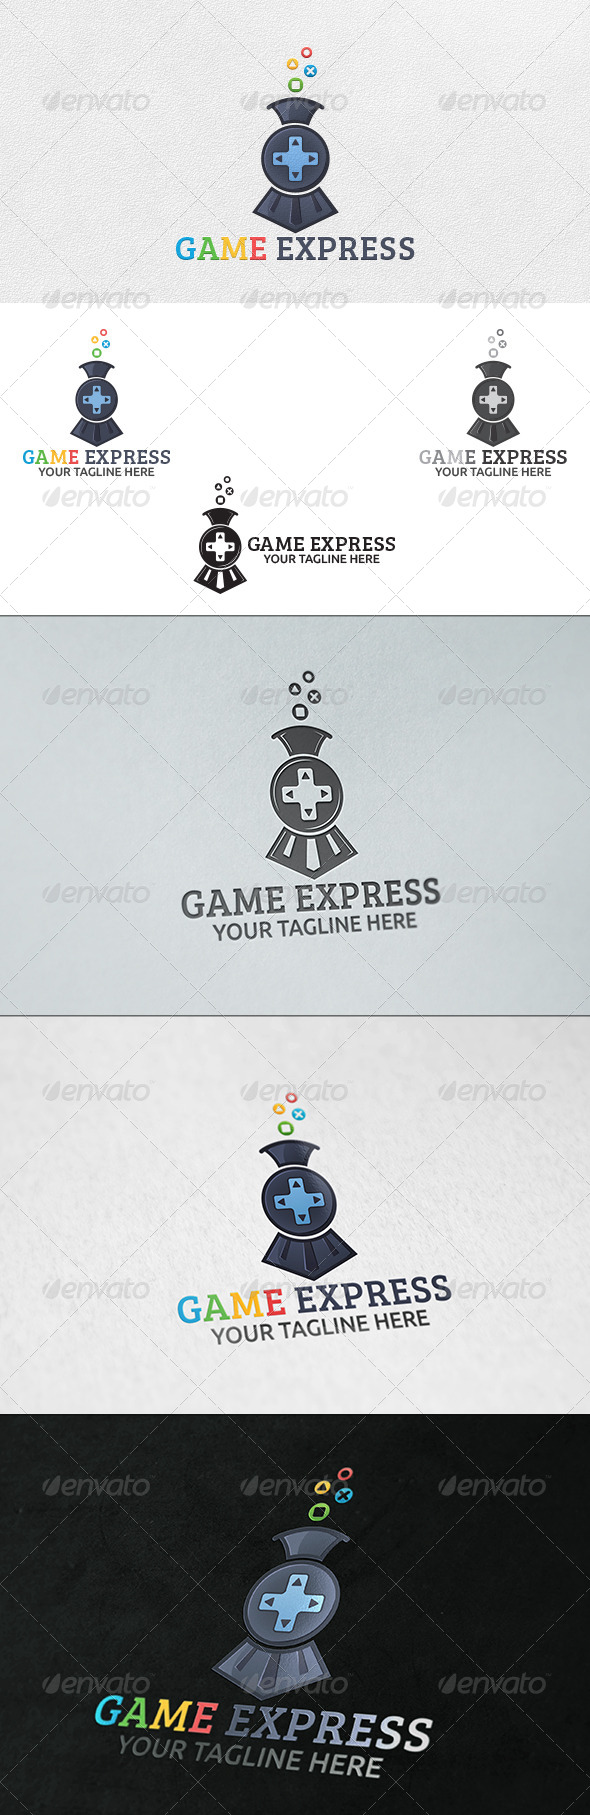 GraphicRiver Game Express Logo Template 6393581